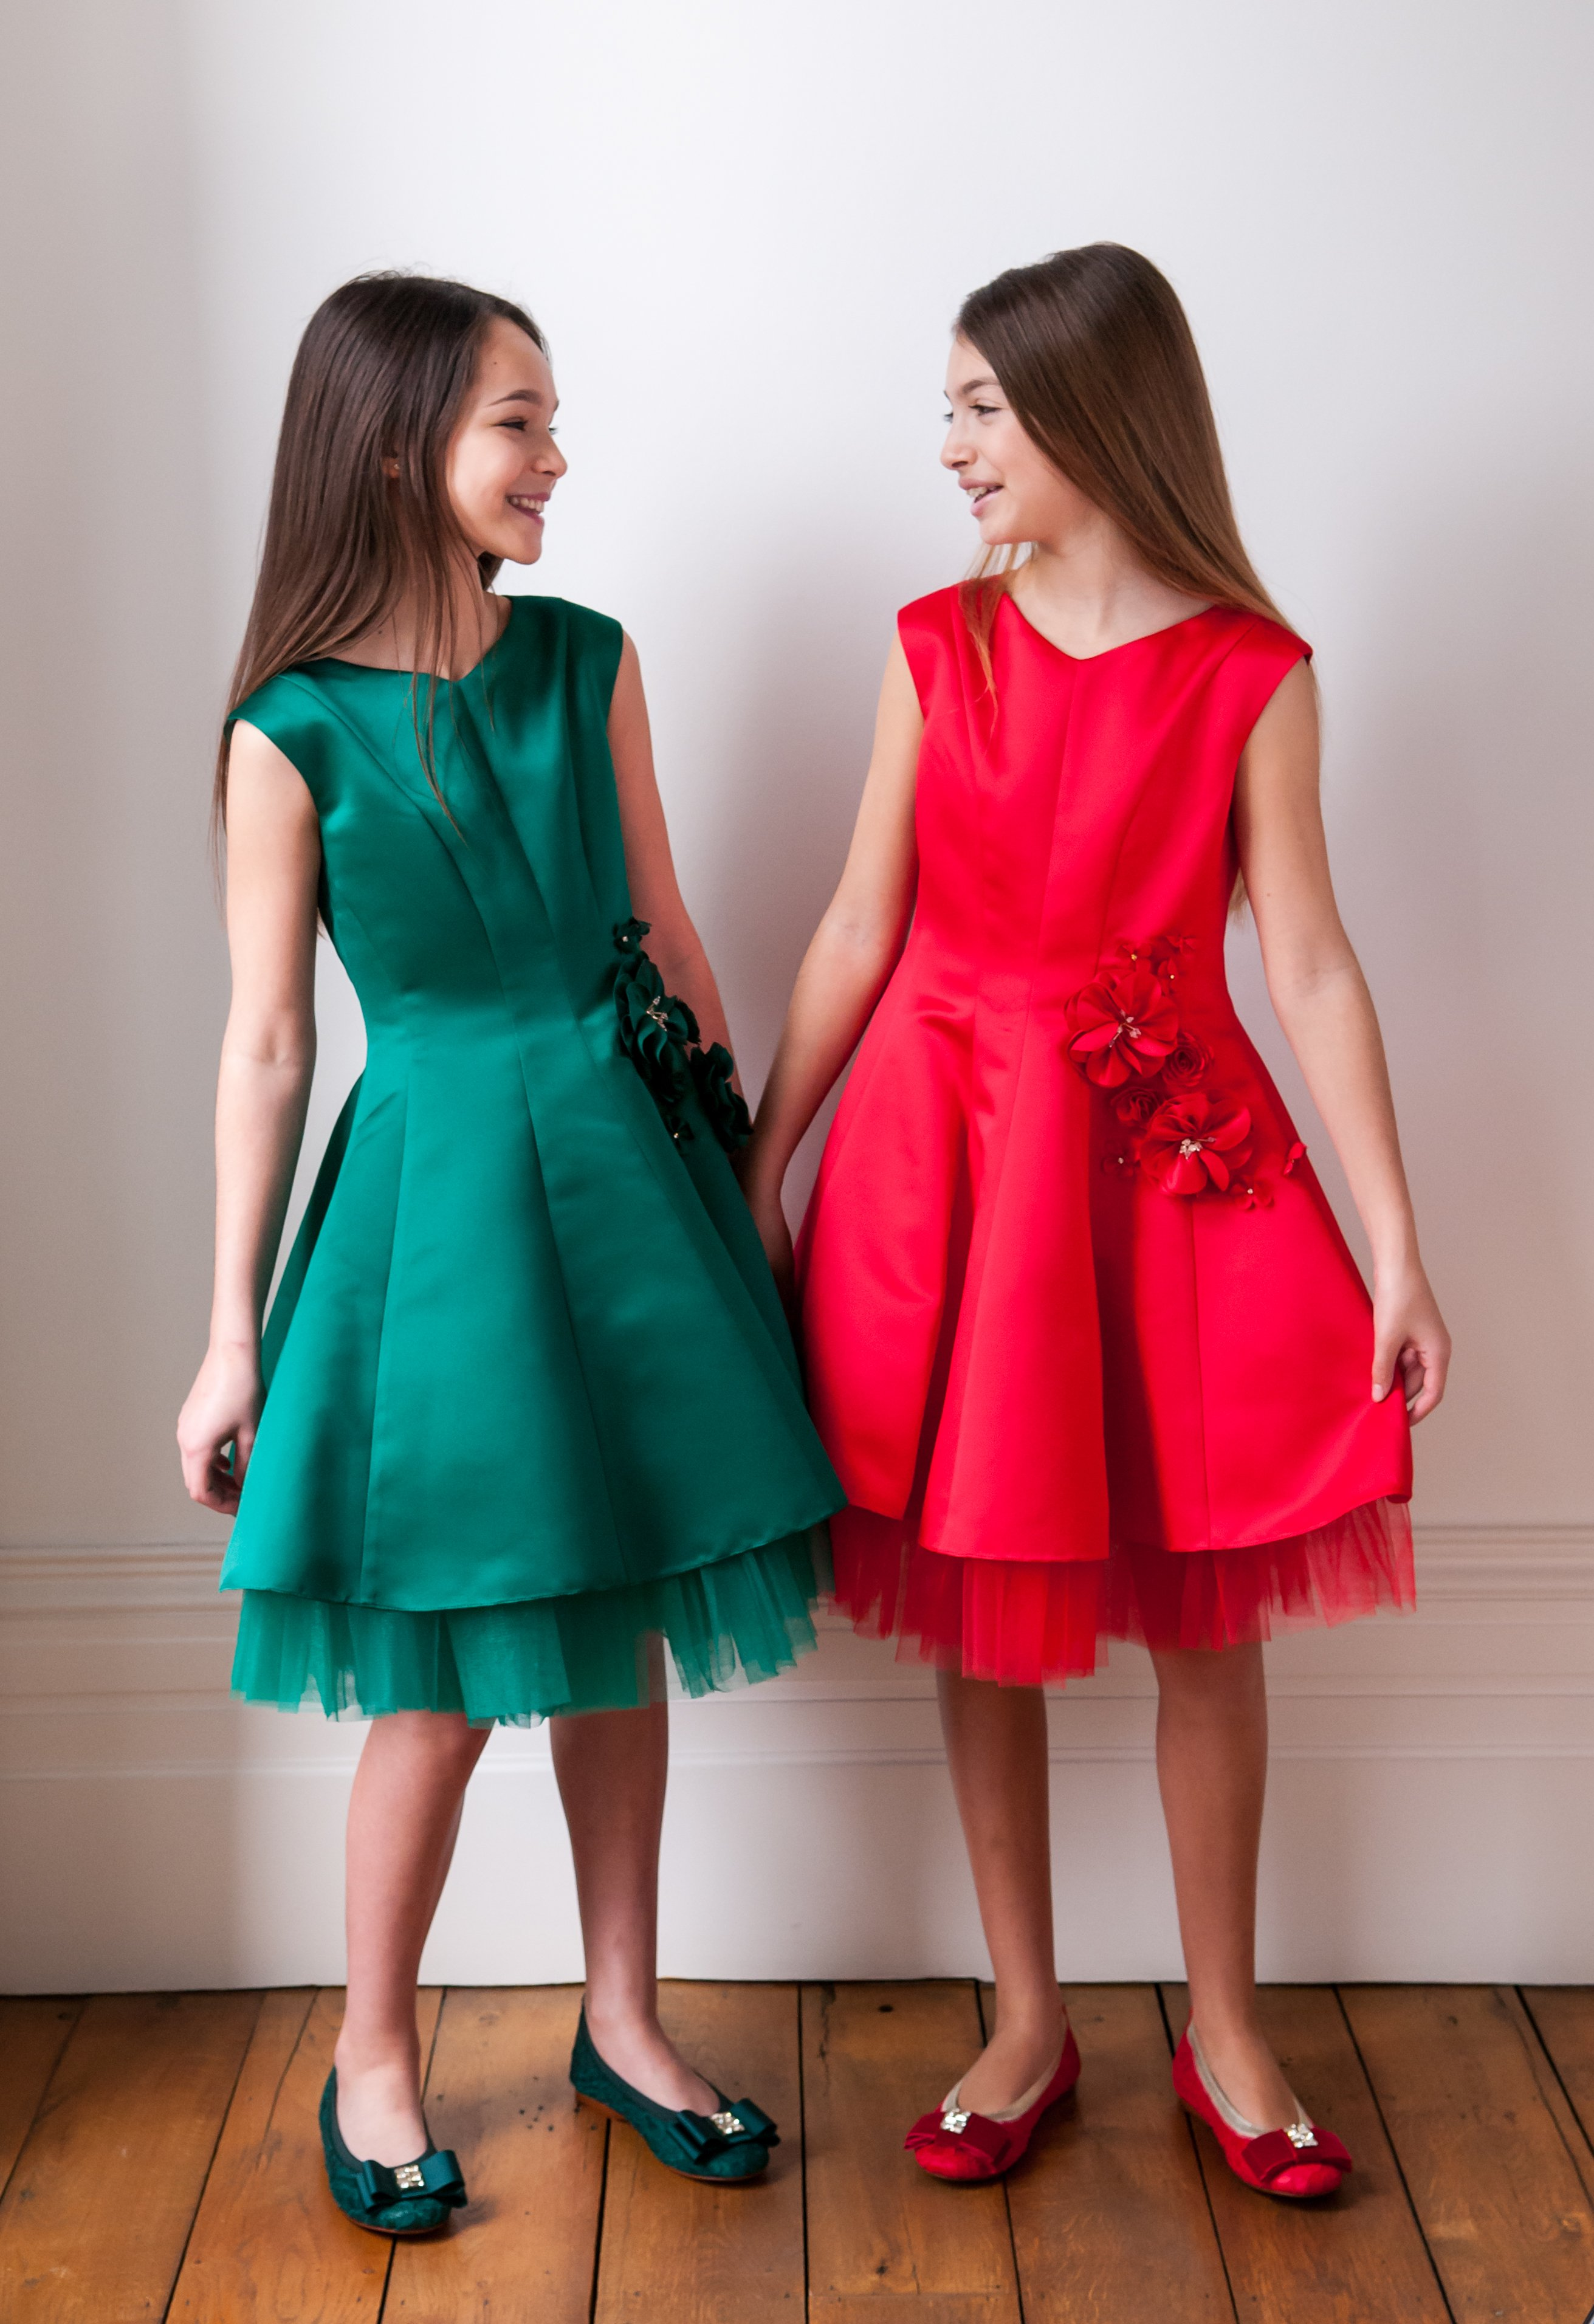 Green and Red Layered Dresses